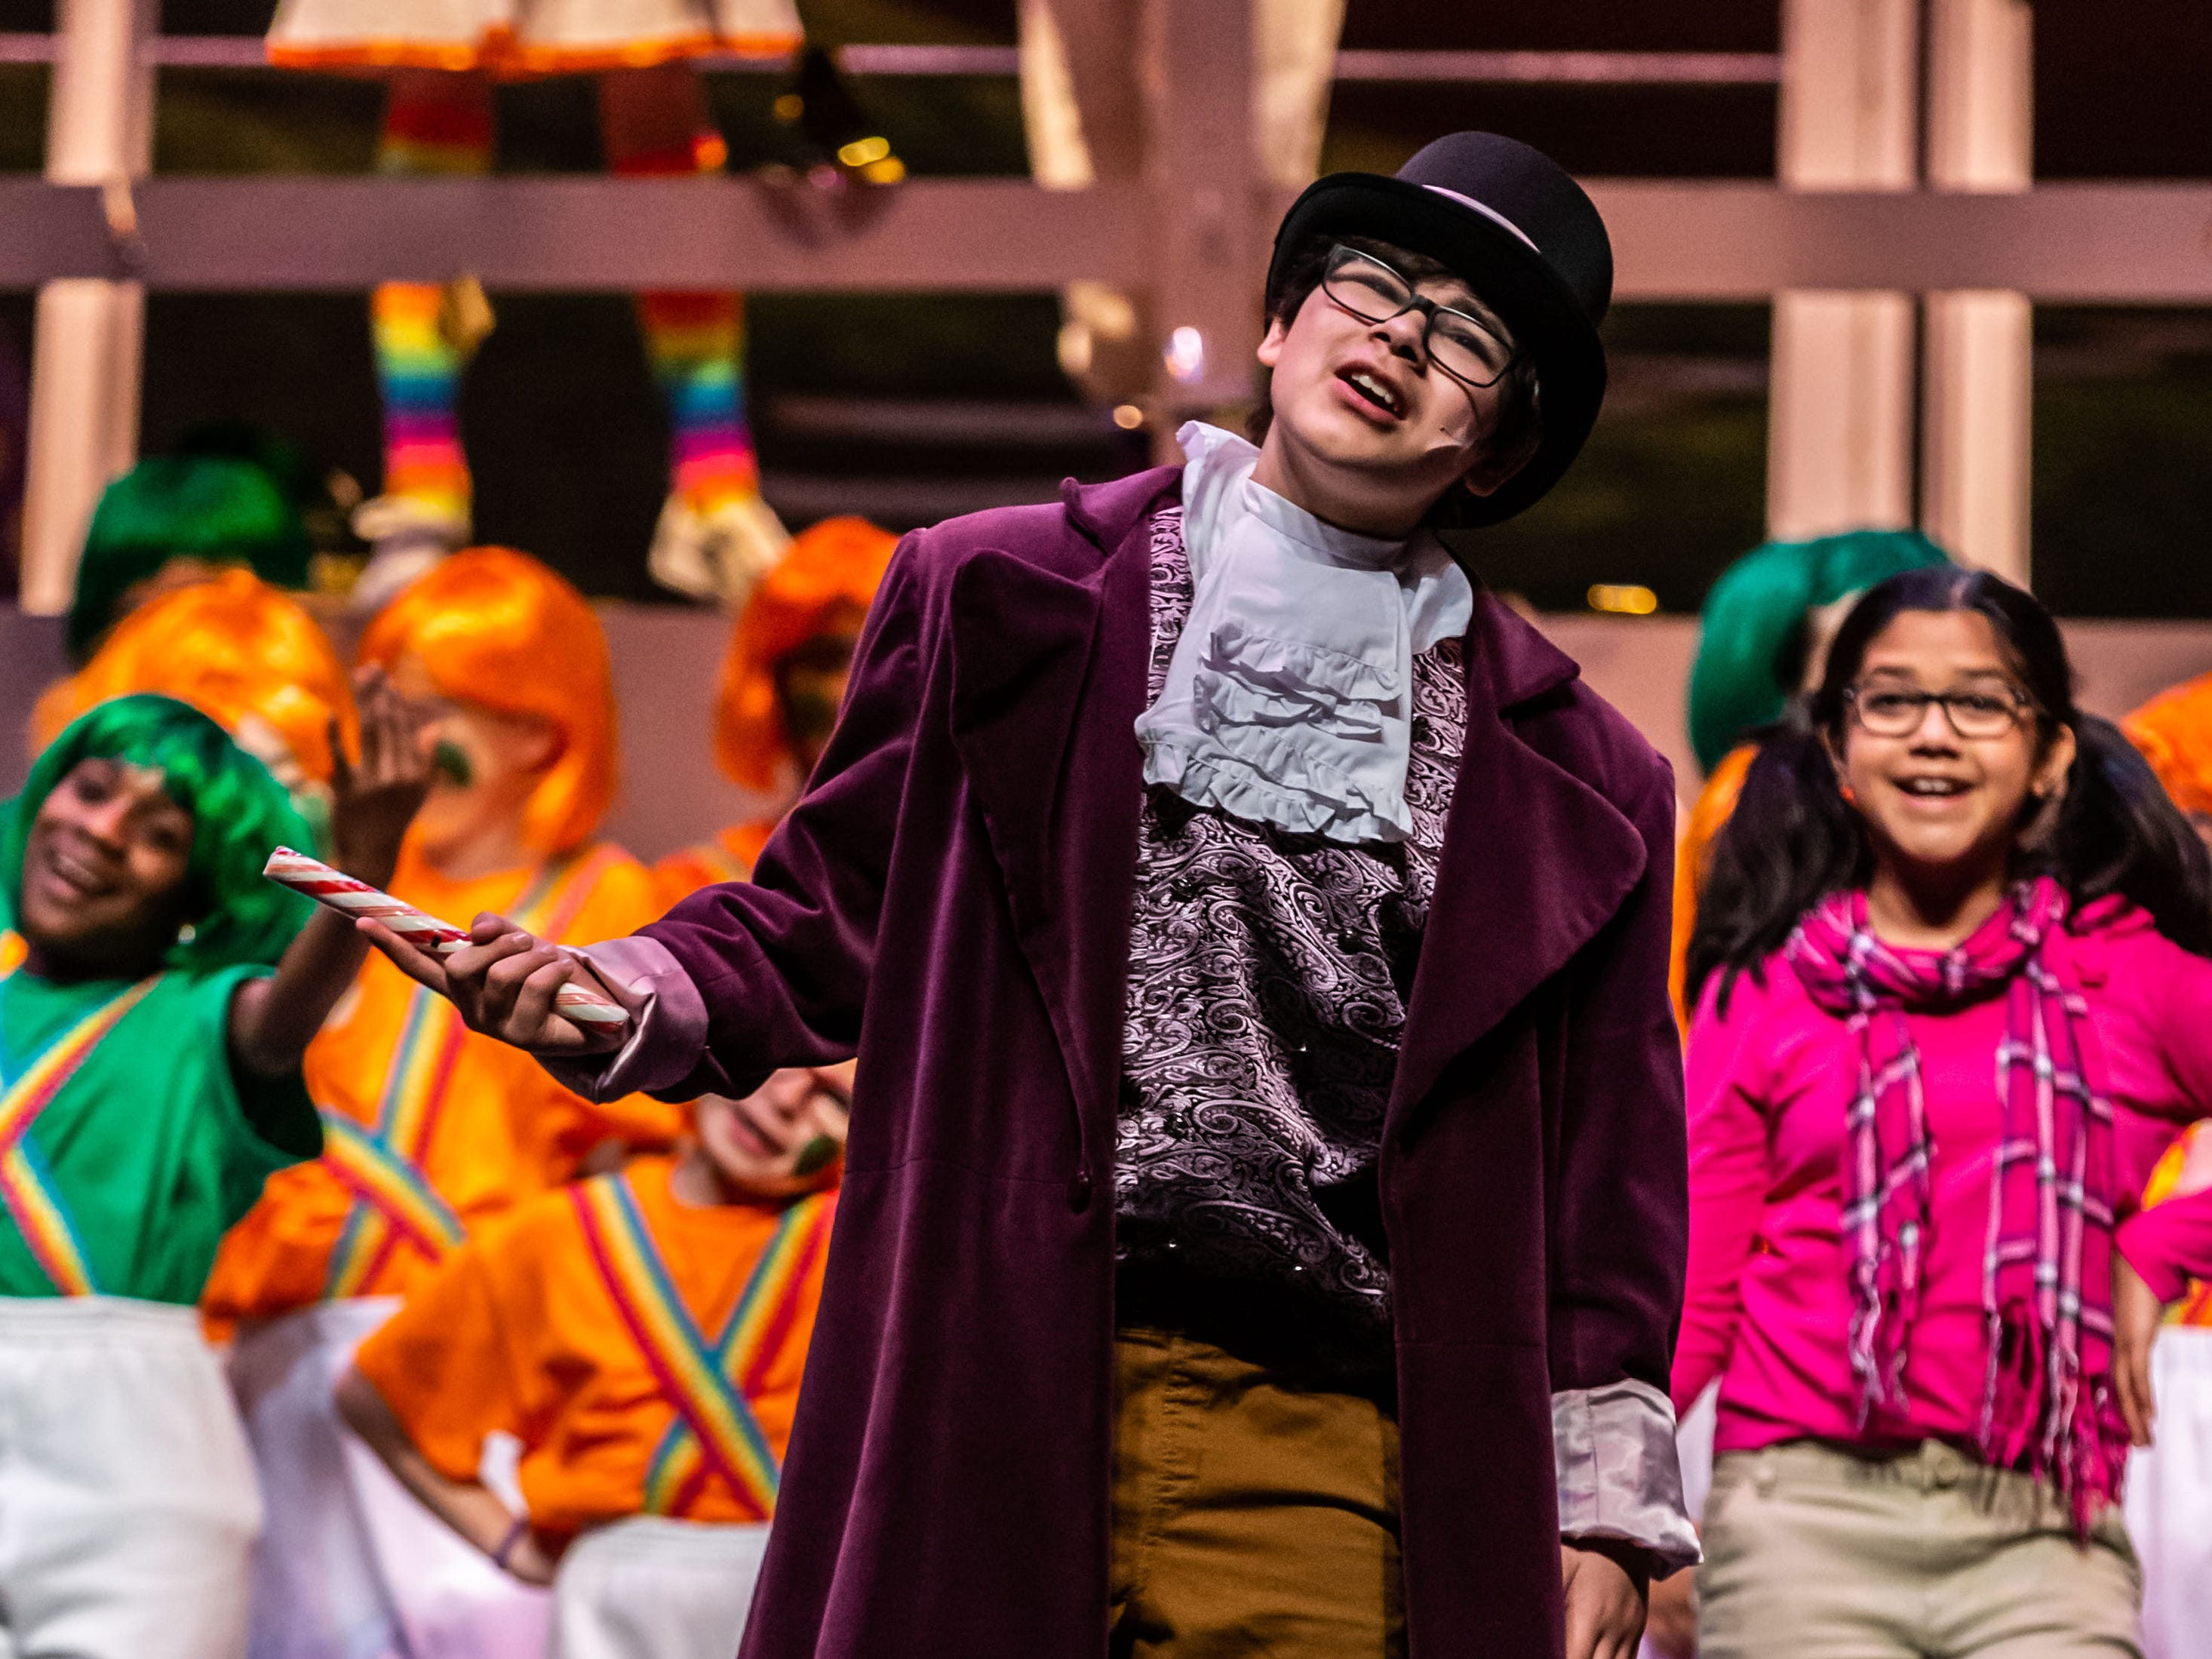 Brookfield Elementary fifth grader, Aidan Riddle, portrays Willy Wonka in a scene from Roald Dahl's Willy Wonka Jr. during rehearsal at the Sharon Lynne Wilson Center for the Arts in Brookfield on Saturday, March 2, 2019. Public performances are at 7 p.m. on March 2 and 2 p.m. on March 3.